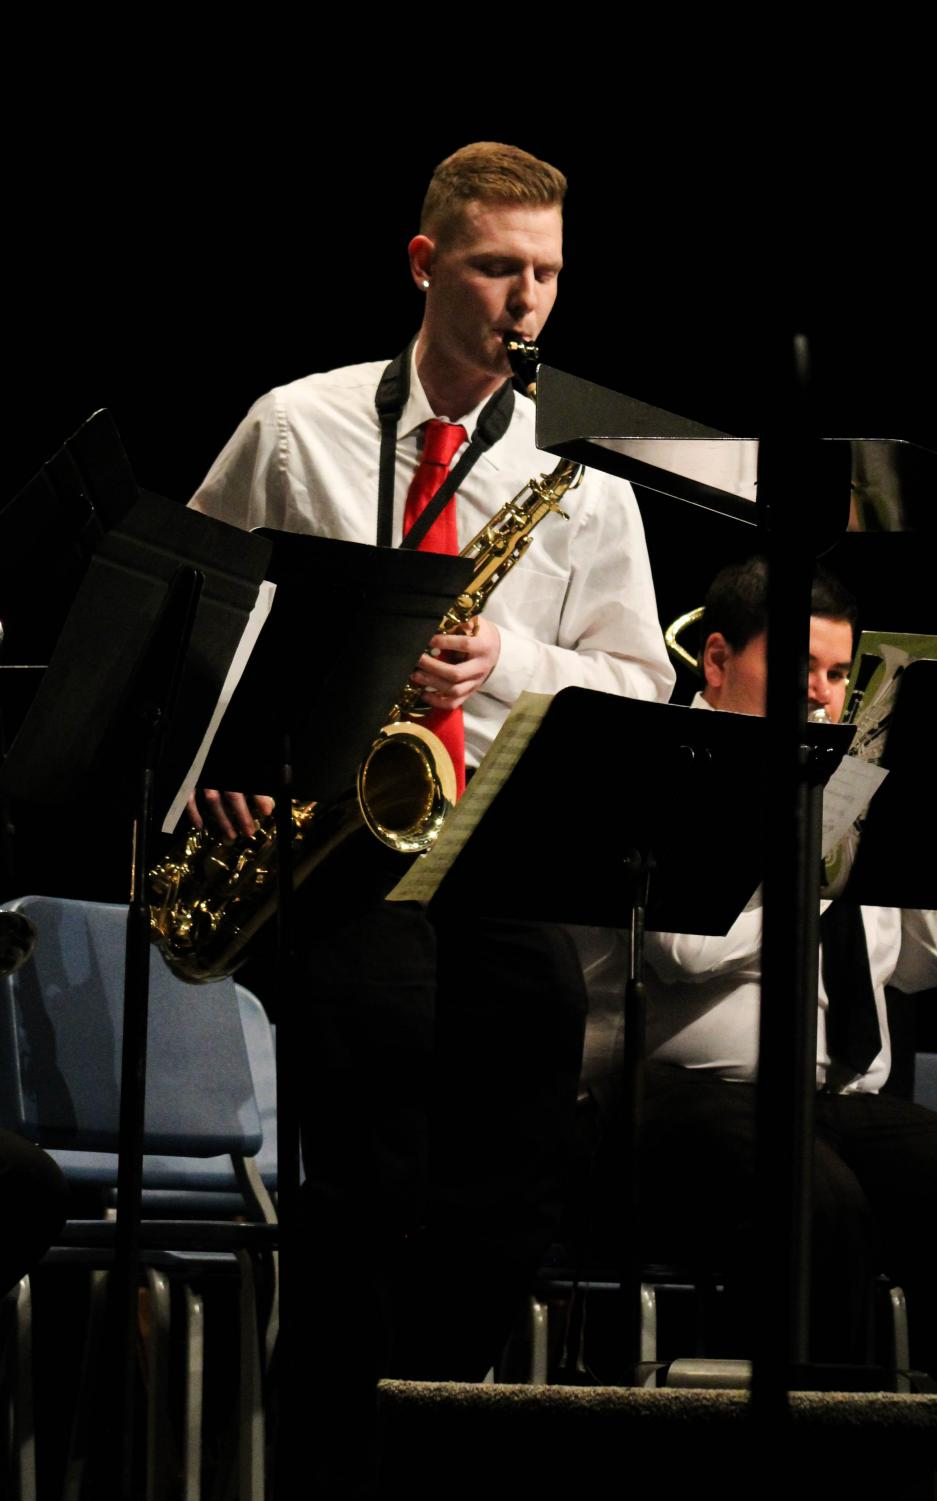 Virgil+Wright+played+several+solos+on+the+tenor+saxophone+during+the+concert.